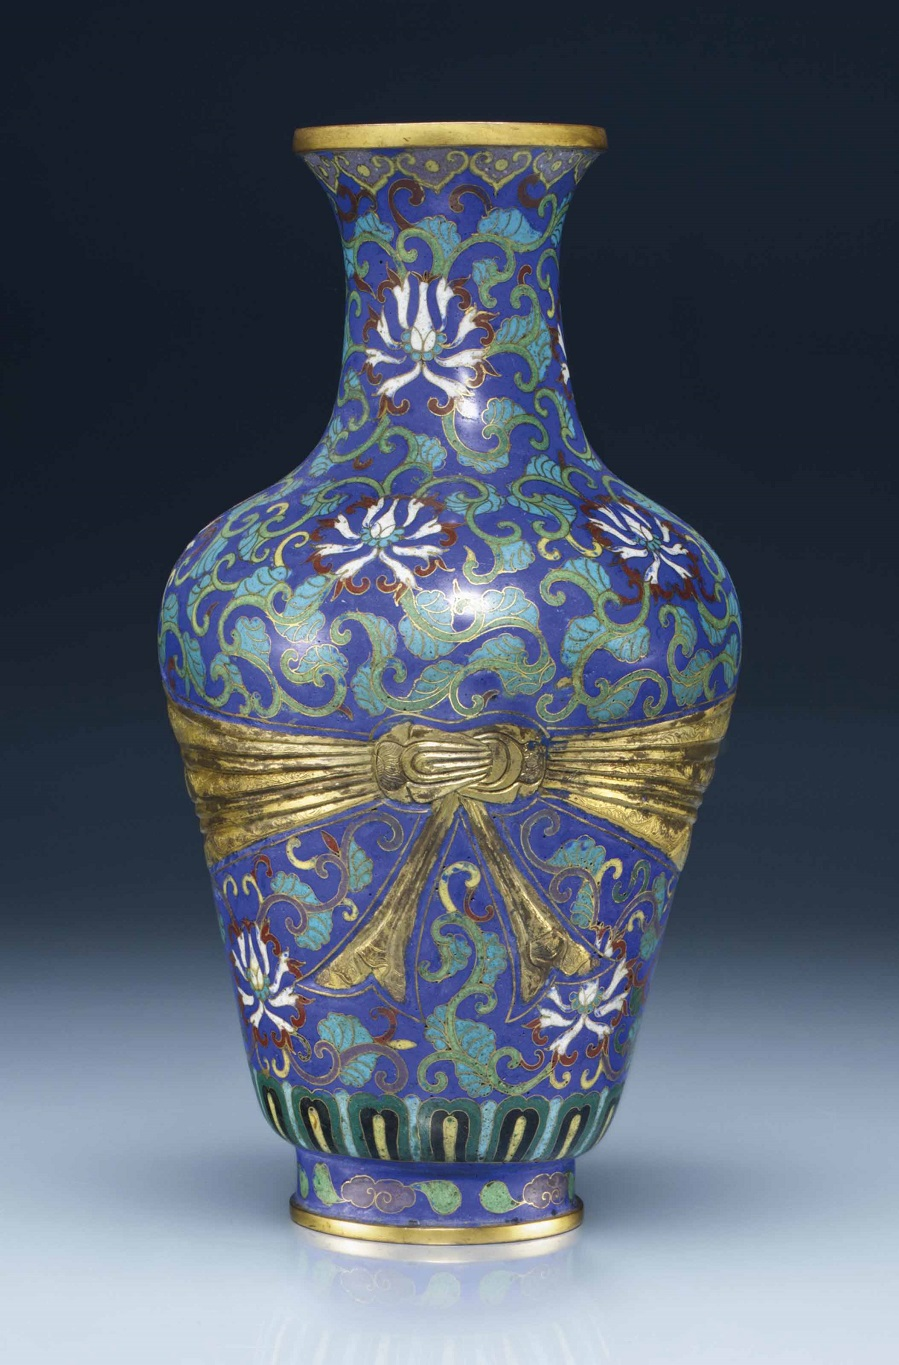 2014_NYR_02873_0647_000a_cloisonne_enamel_sash-tied_vase_18th-early_19th_century.jpg